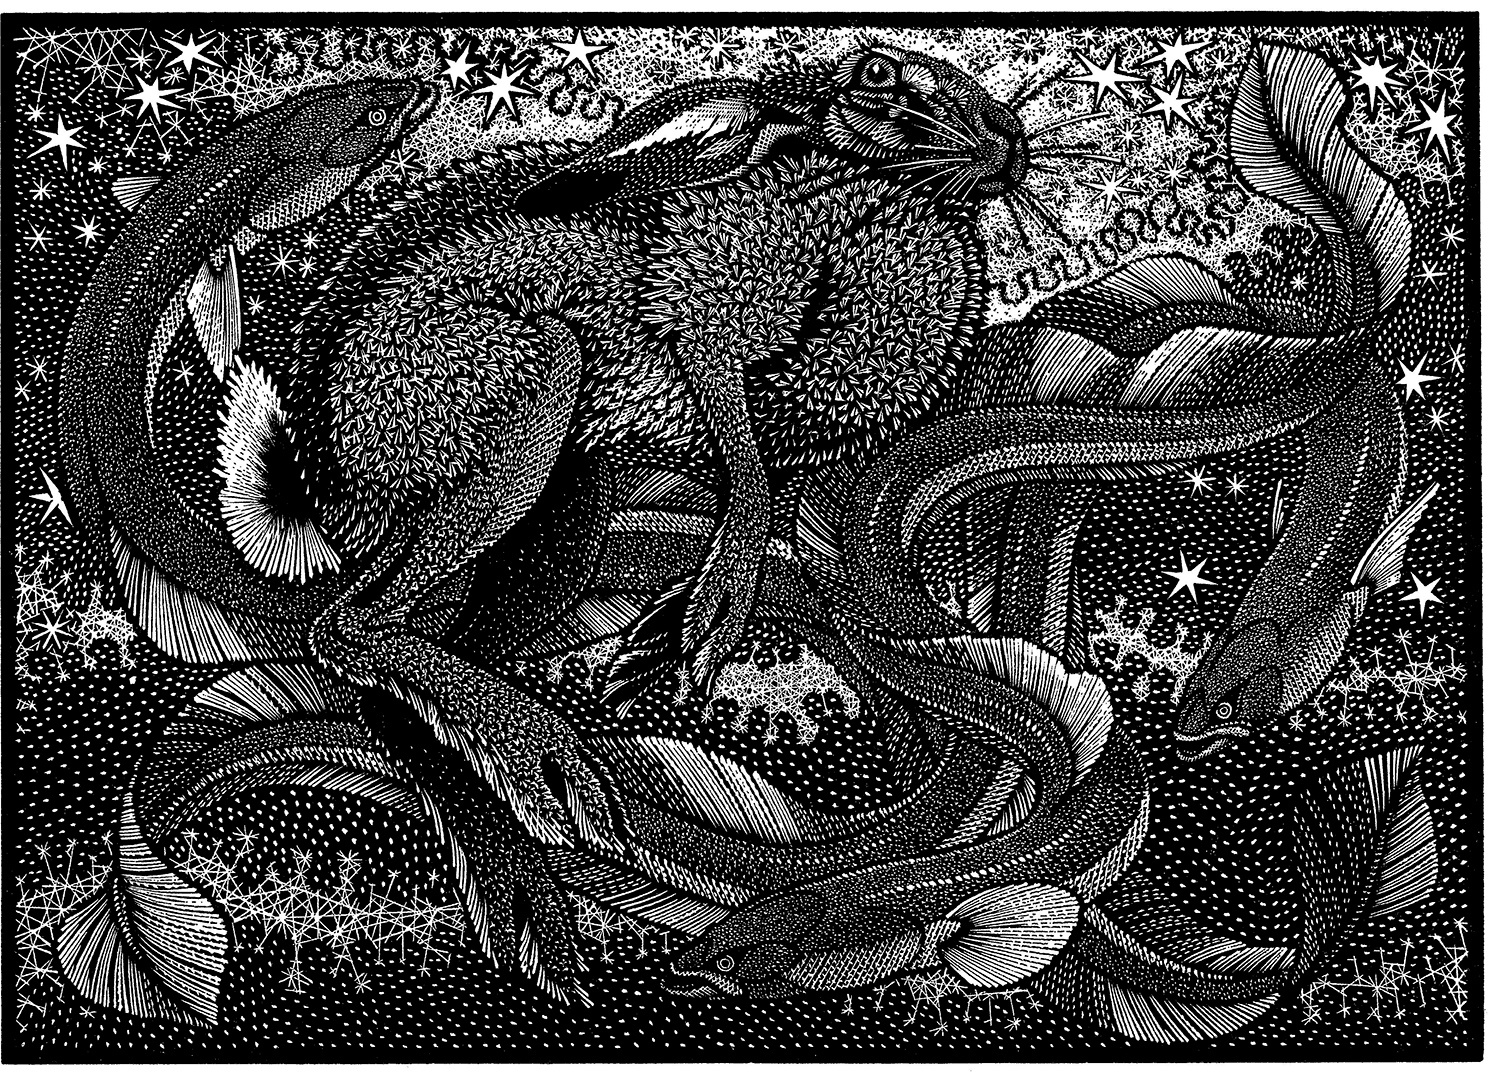 Nocturnal Encounters-Hare and Eels by Colin See-Paynton